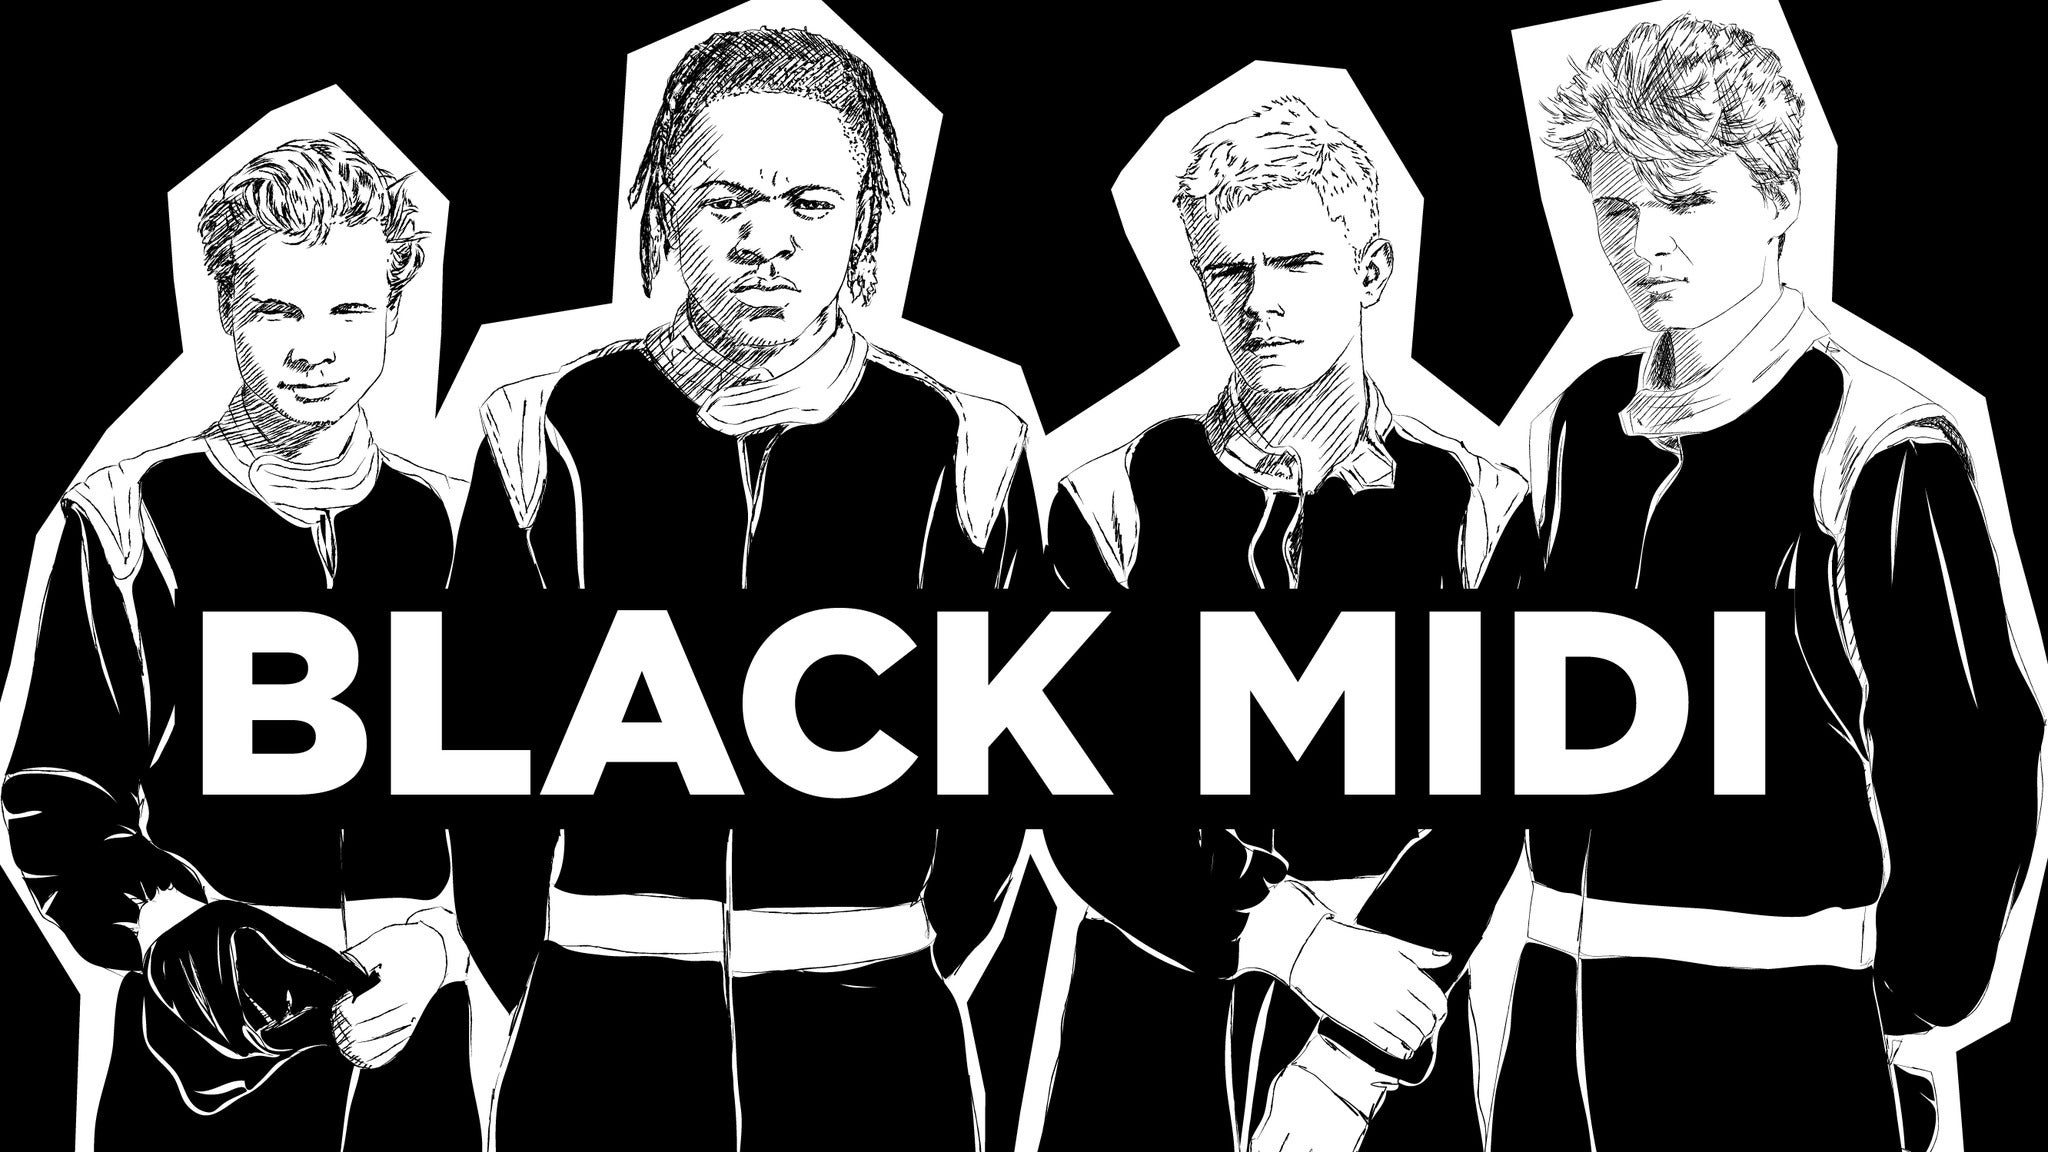 Image used with permission from Ticketmaster | Black Midi tickets